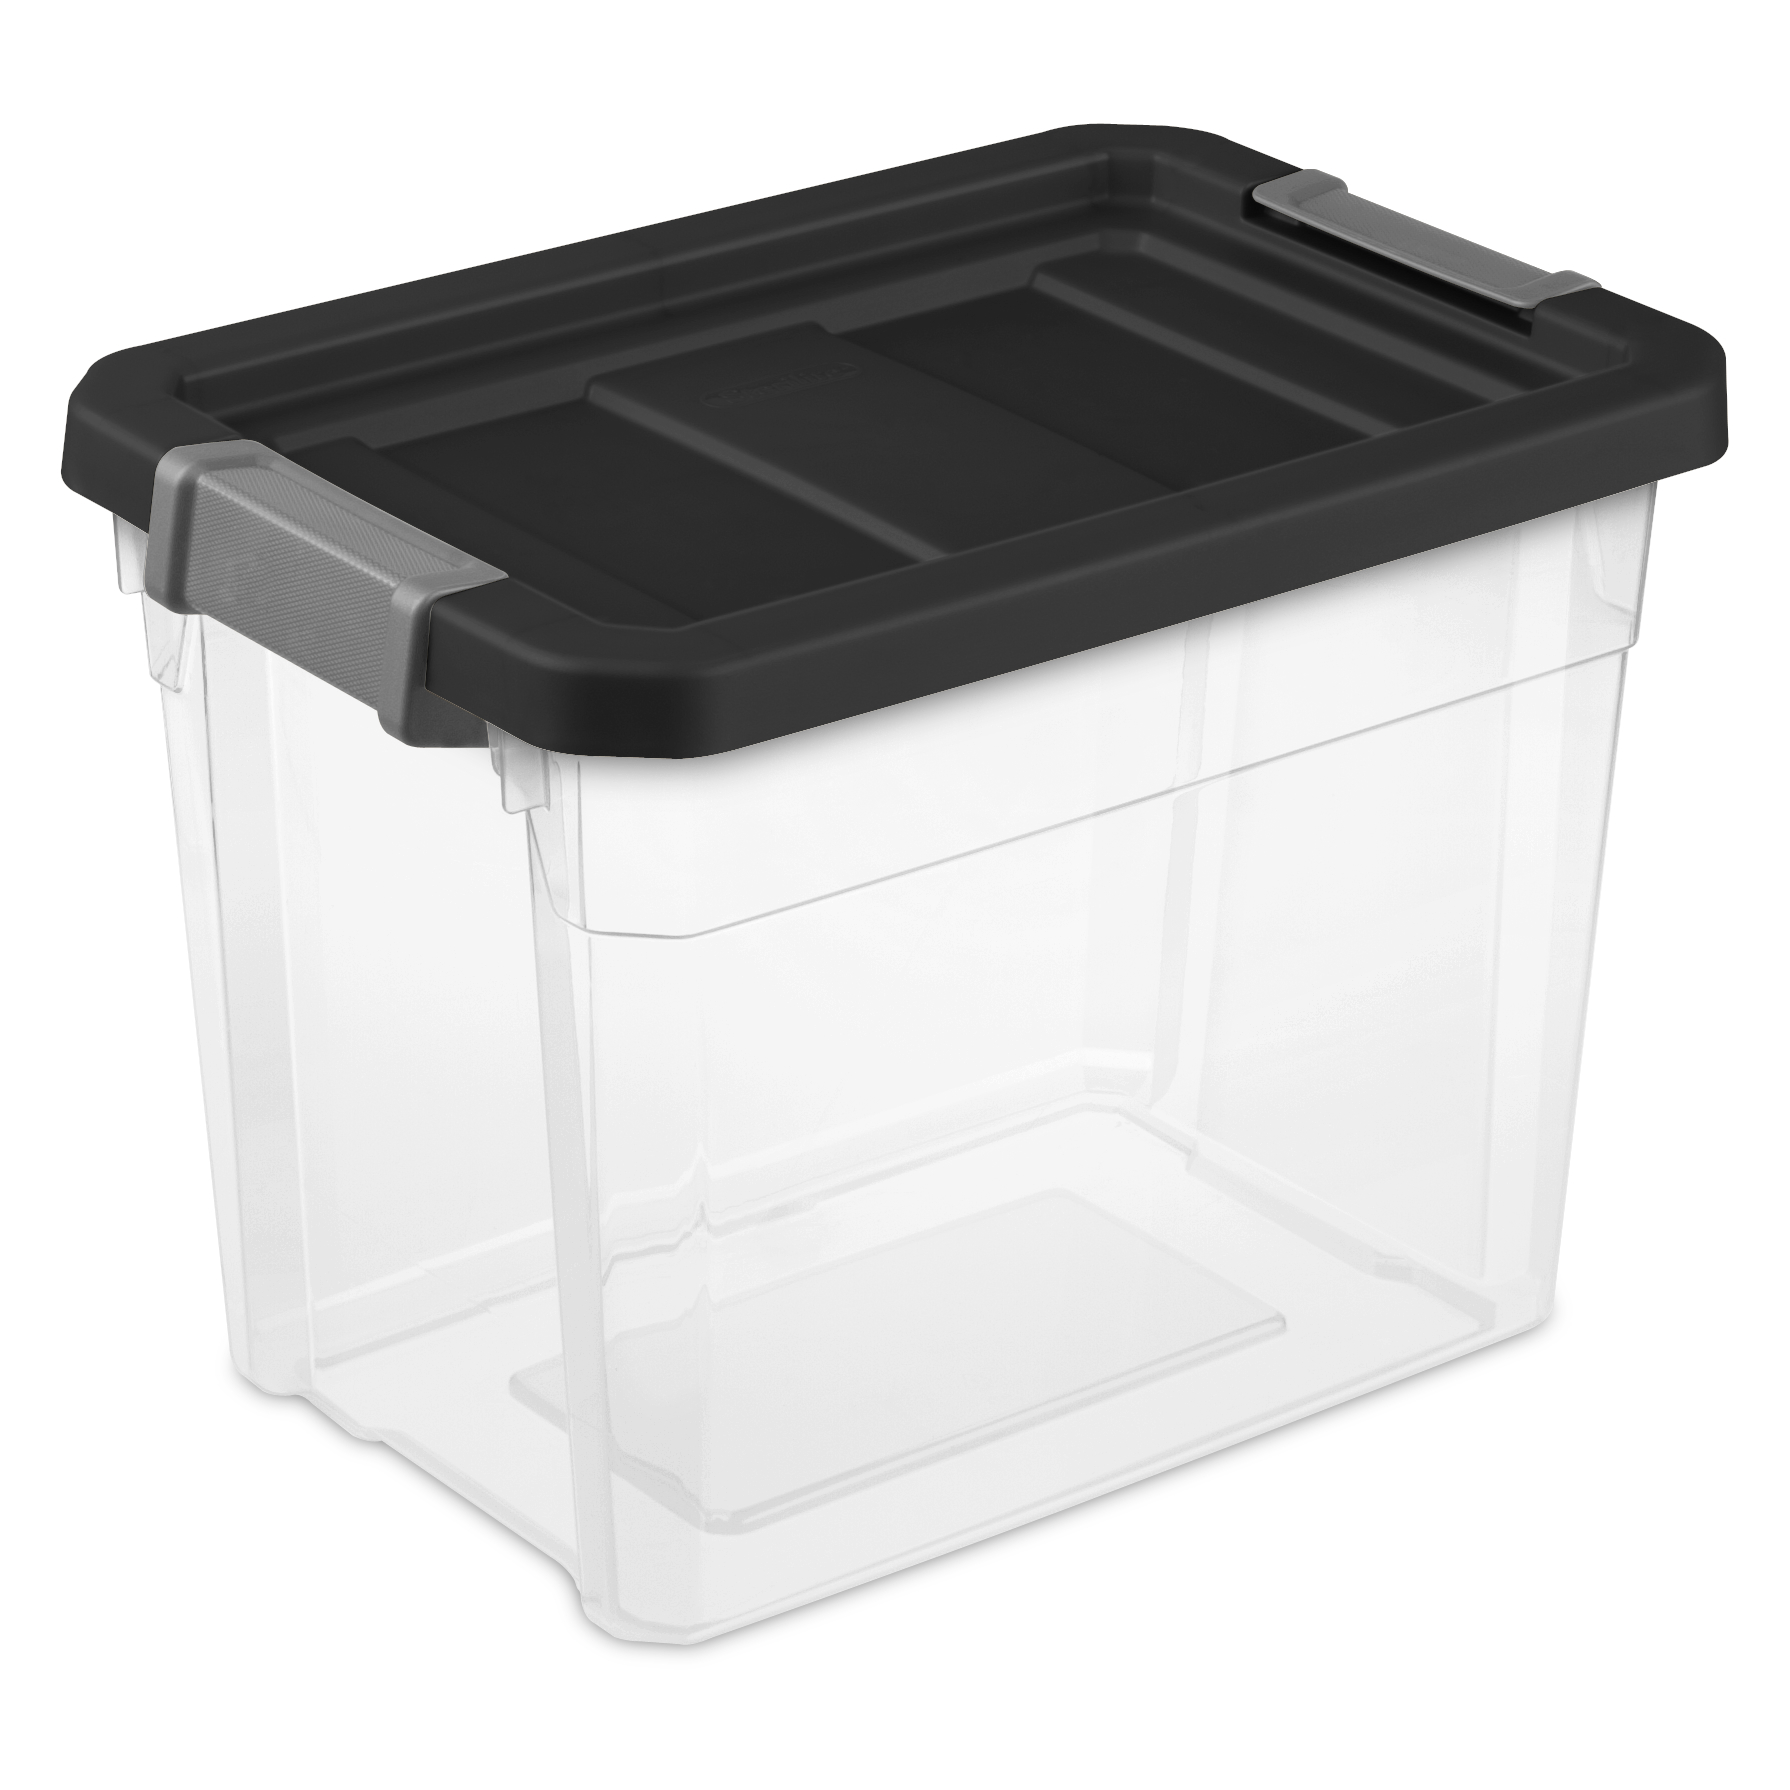 Sterilite, 7.5 Gal./28 L Stacker Box, Case of 6